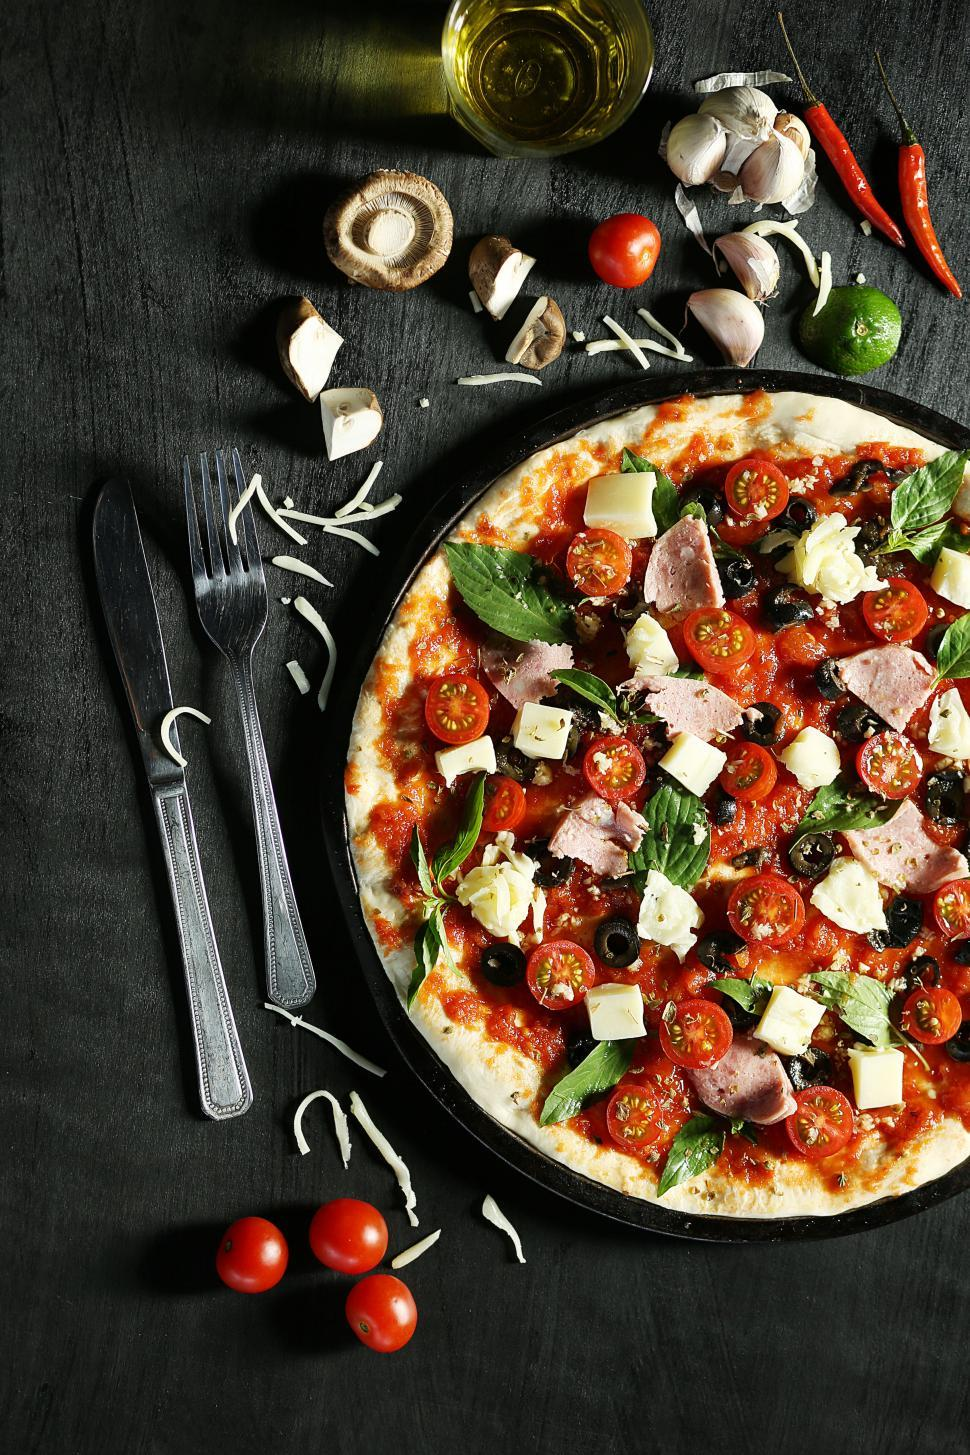 Download Free Stock Photo of Freshly baked pizza with melted cheese mushrooms and basil